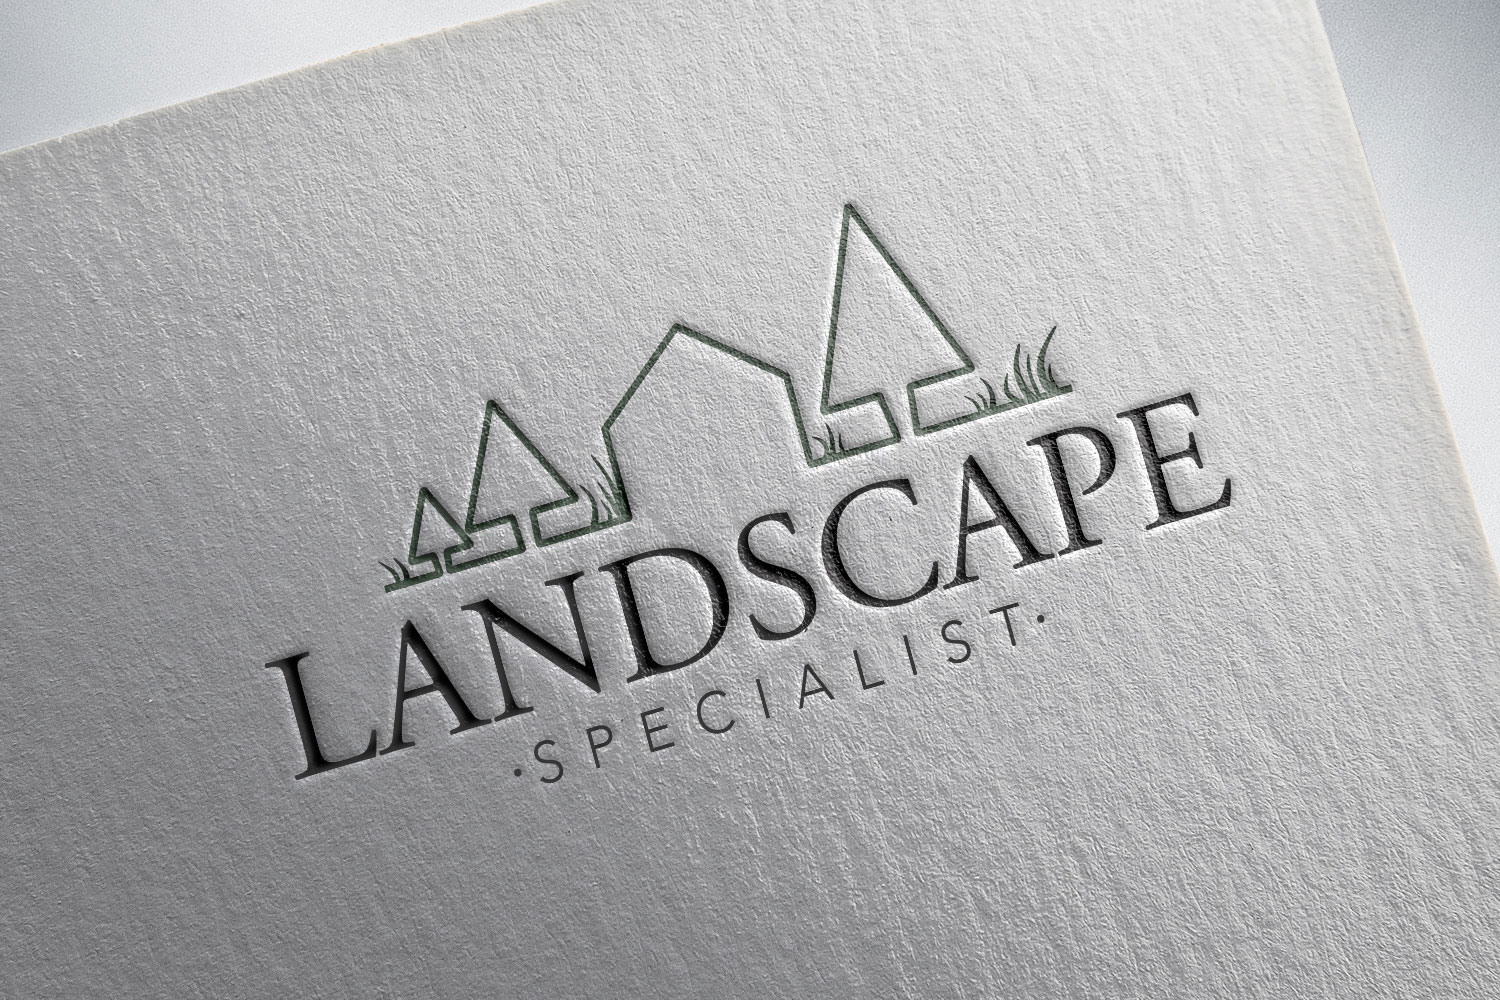 Branding and logo design for an eco friendly landscape company - designed by meganalissa.com